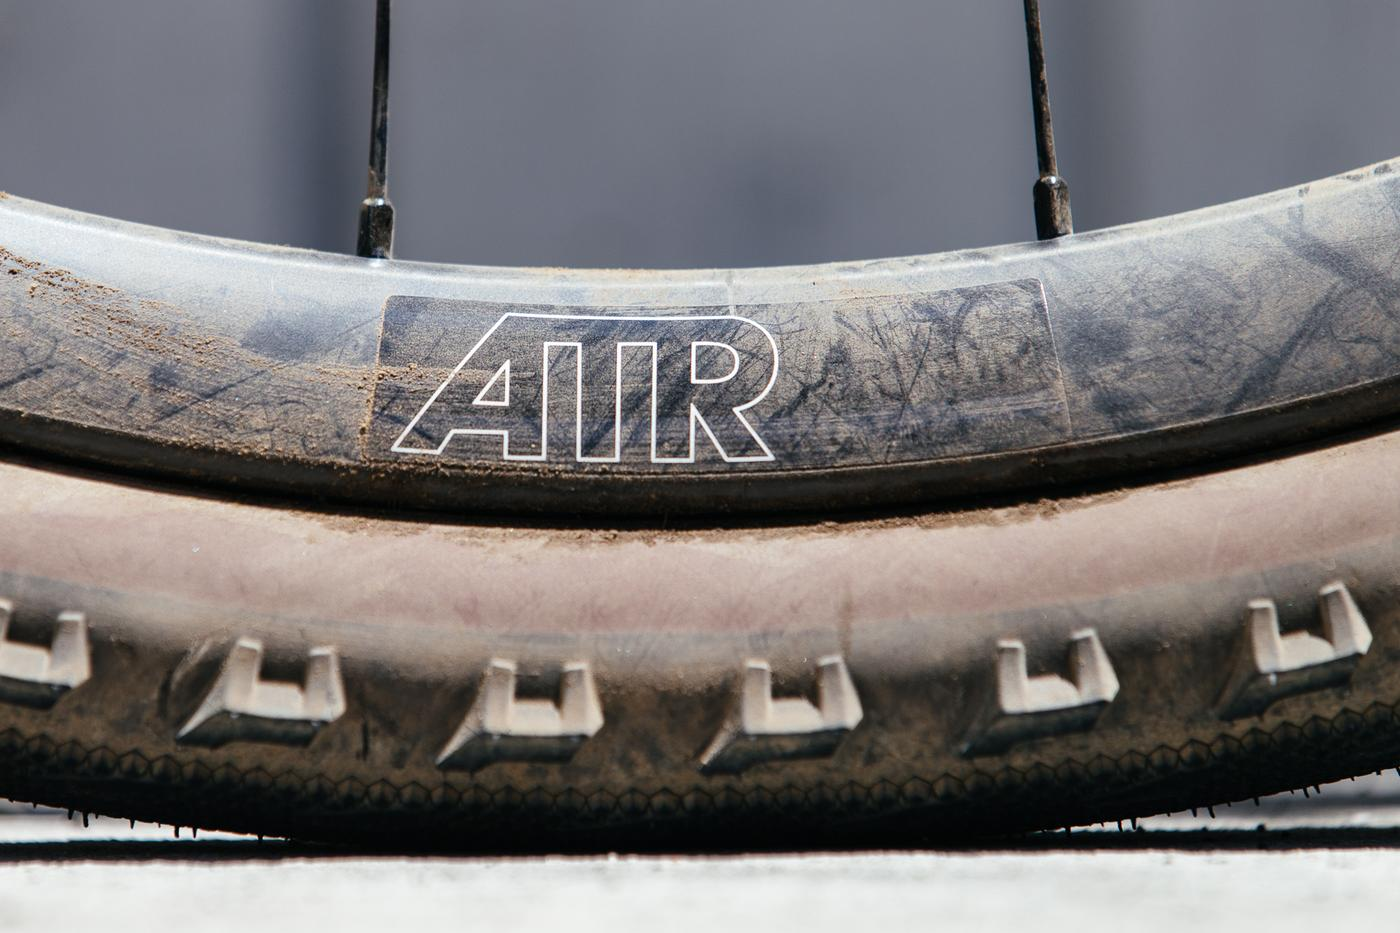 Gettin' the Reynolds ATR Carbon Disc Wheels Dirty